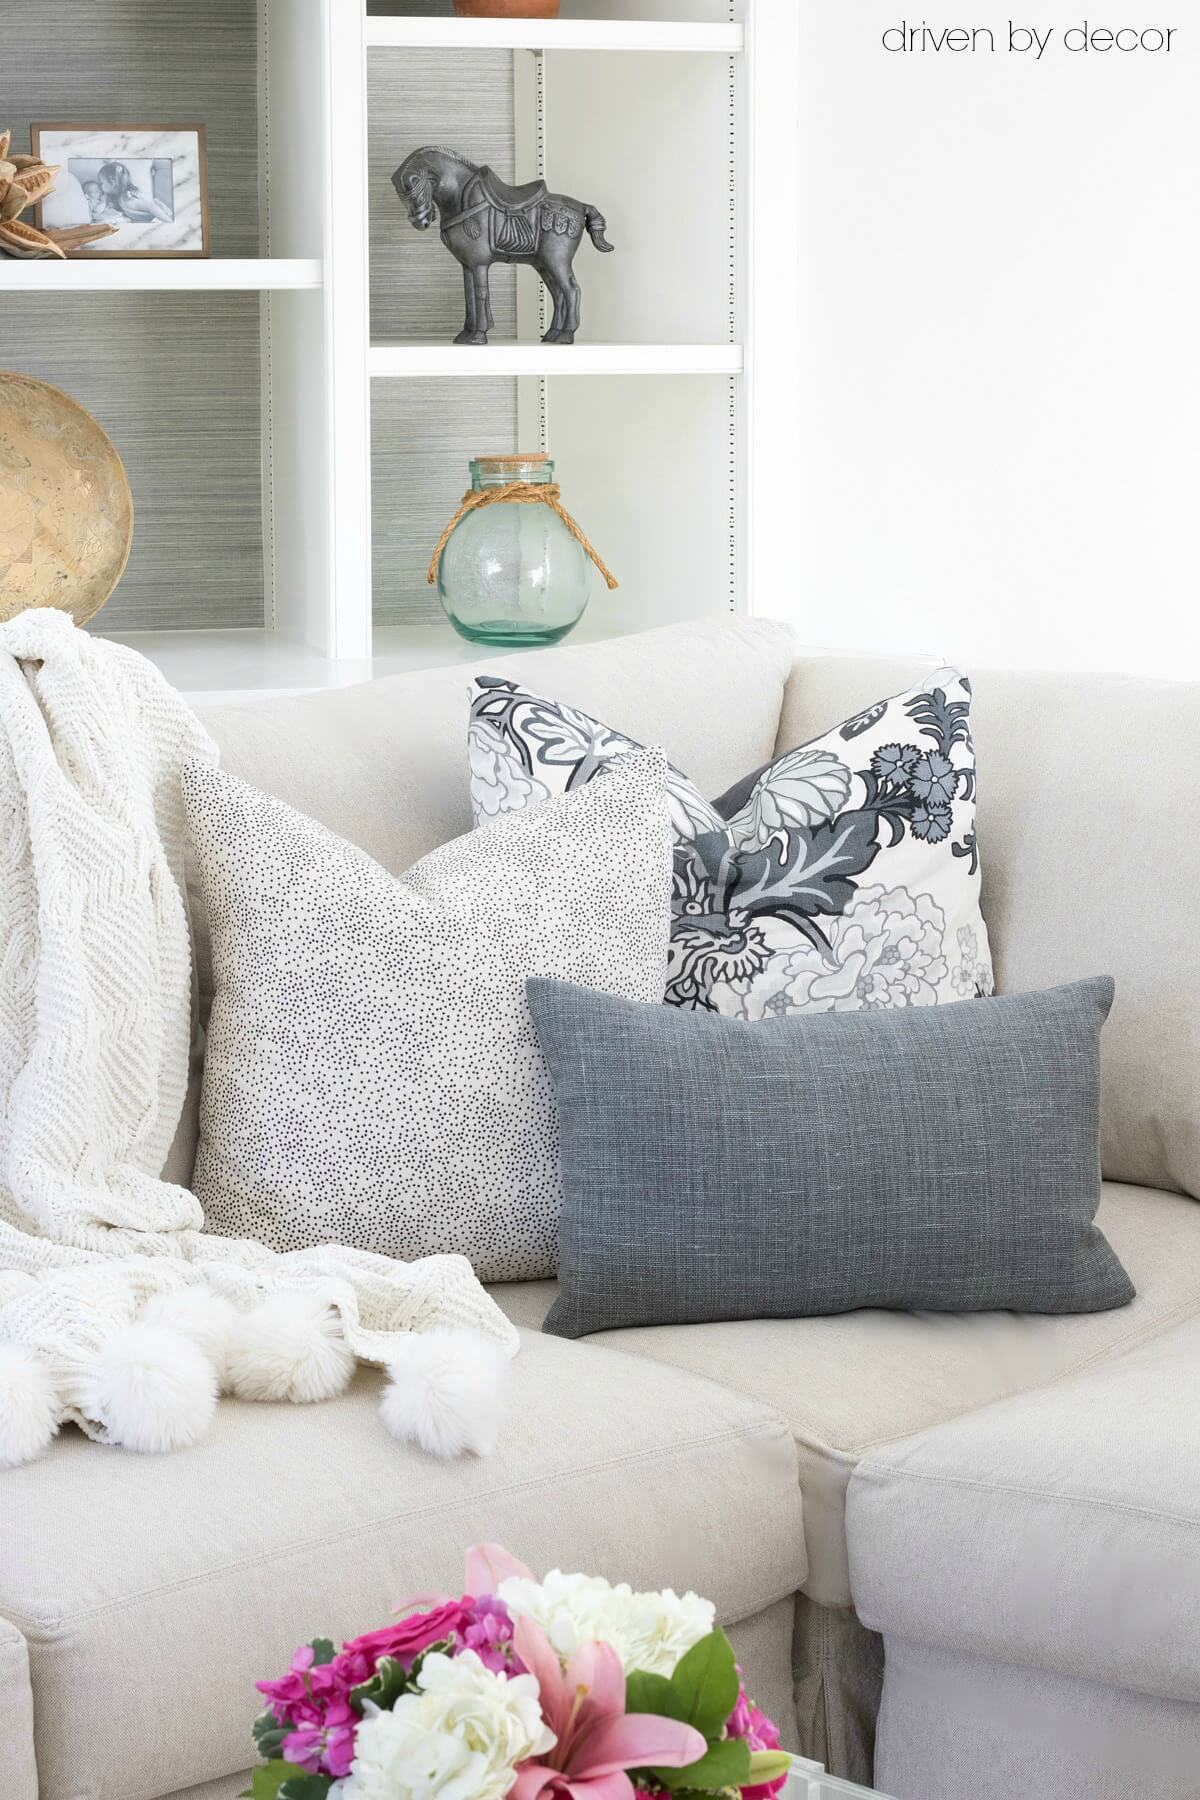 Throw Pillow Arrangement : Pillows 101: How to Choose & Arrange Throw Pillows - Driven by Decor